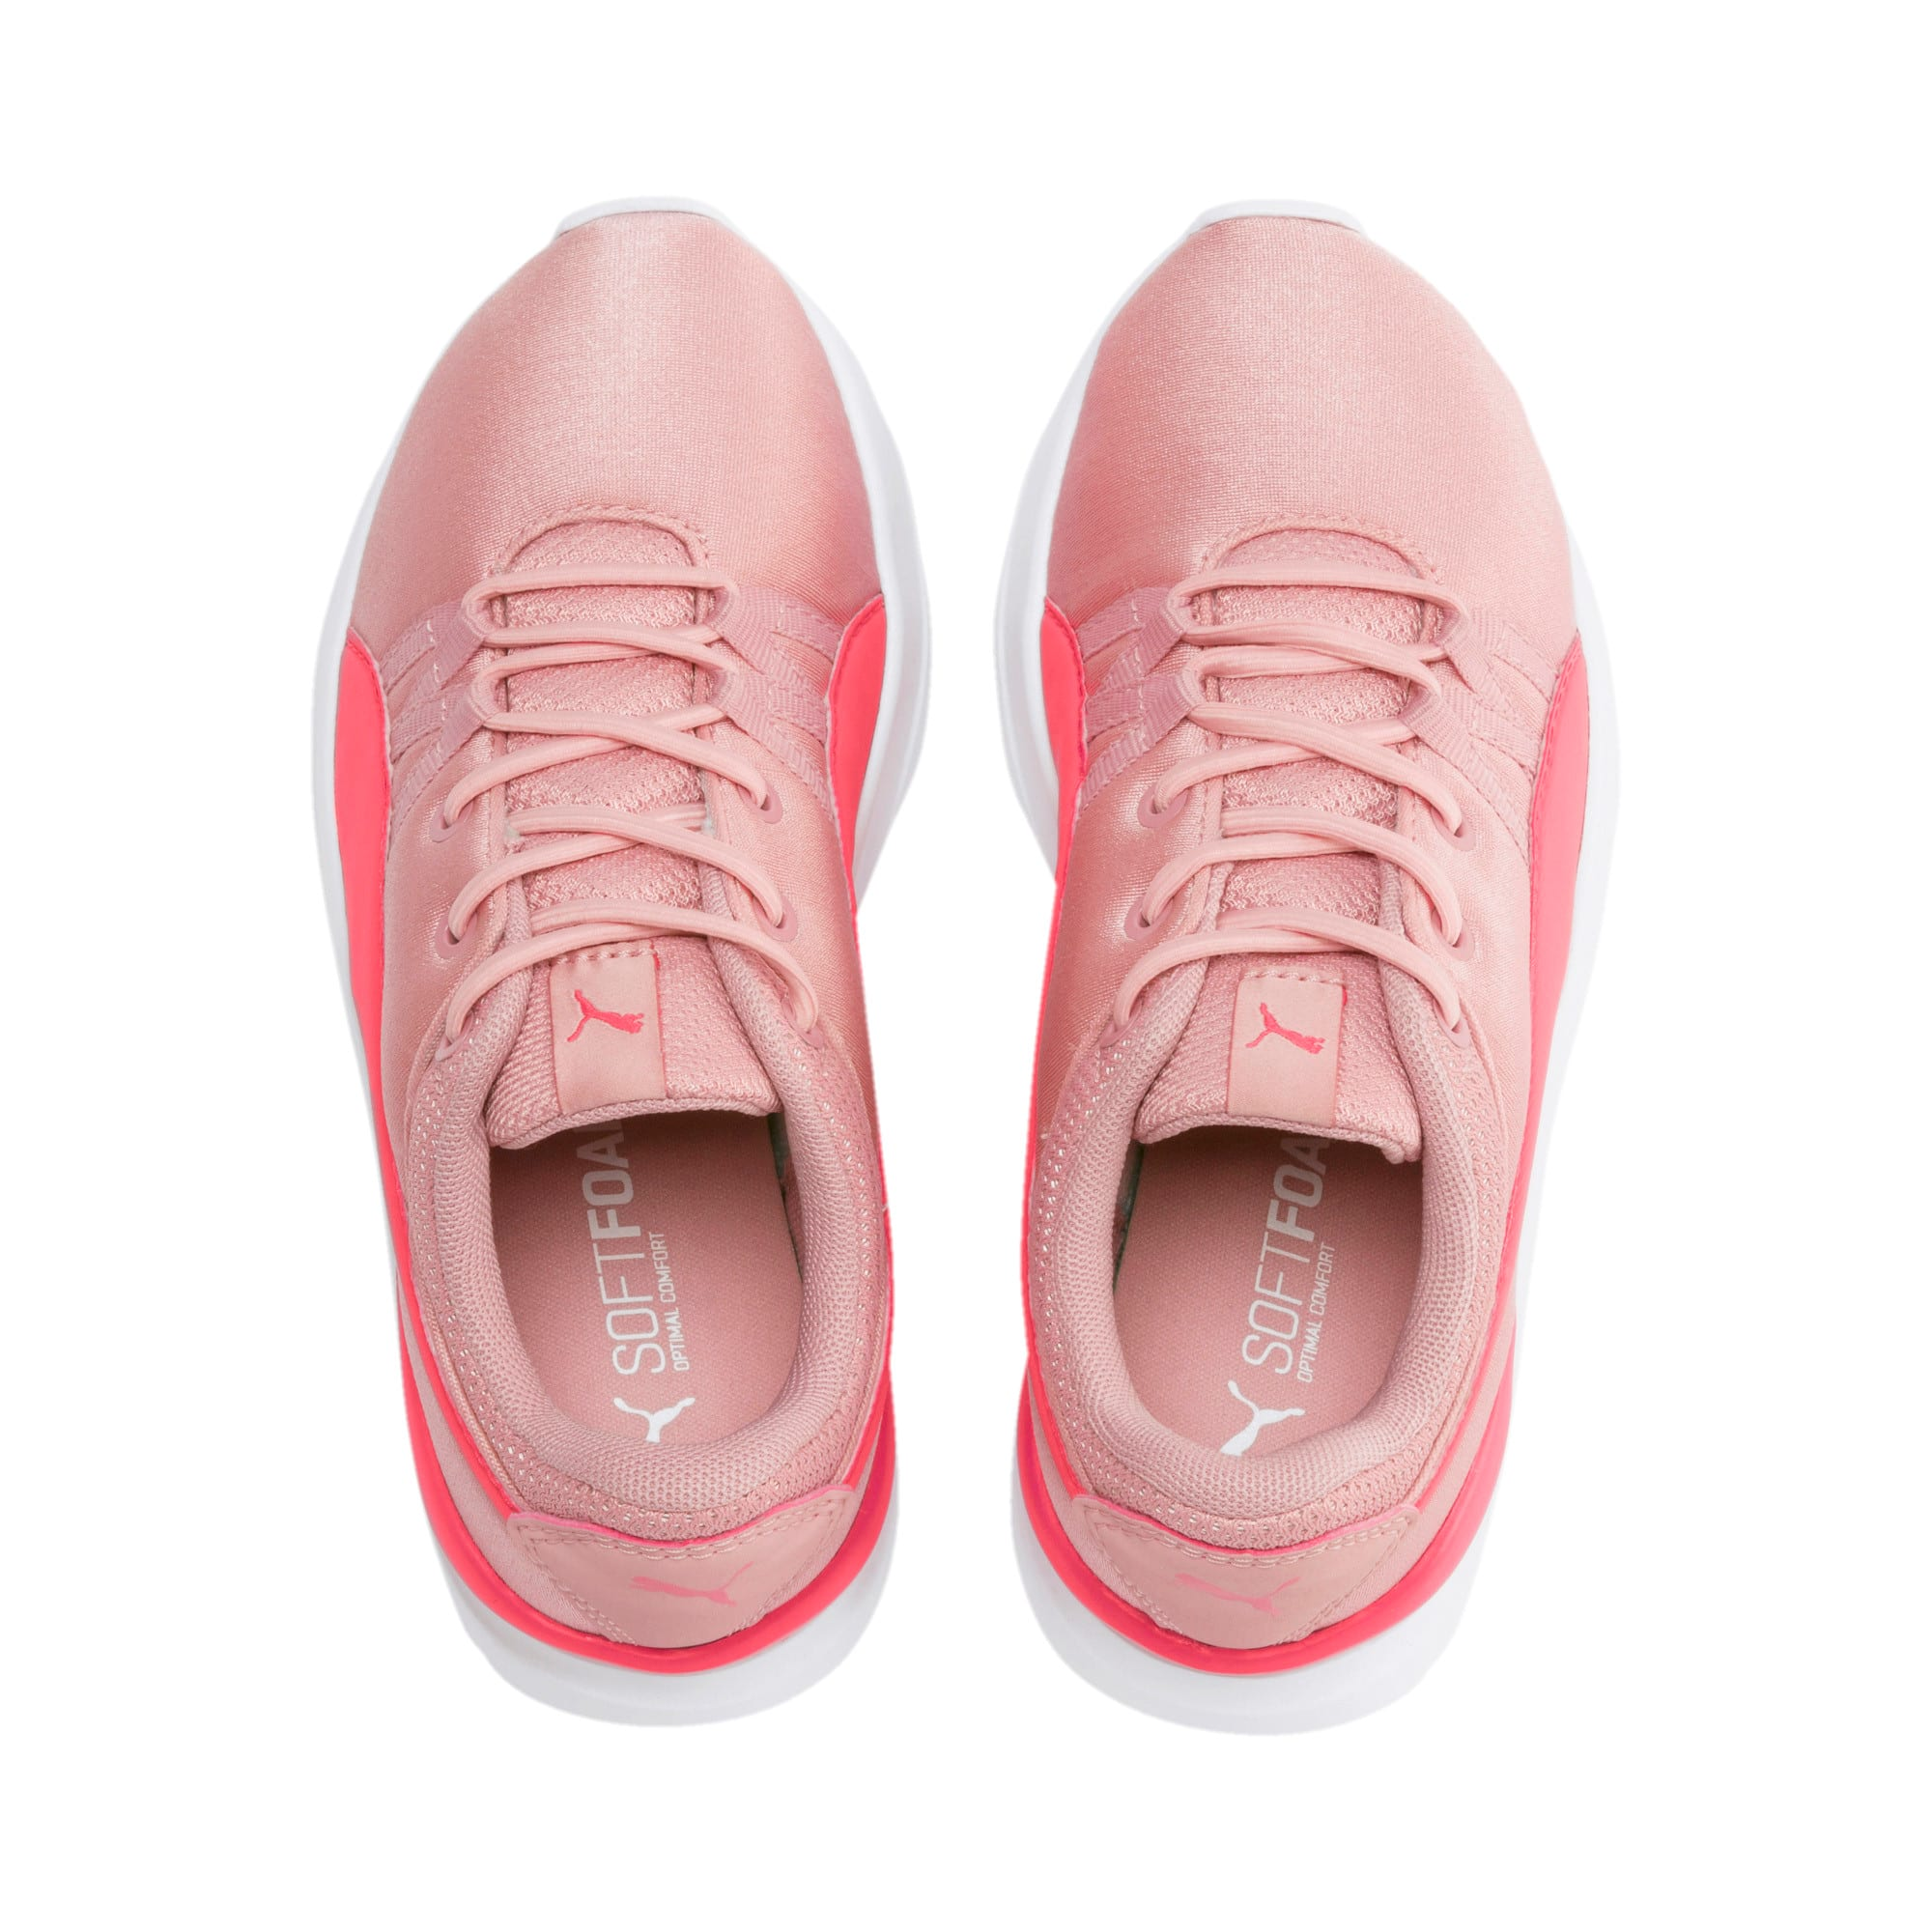 Thumbnail 6 of Adela Girls' Trainers, Bridal Rose-Calypso Coral, medium-IND